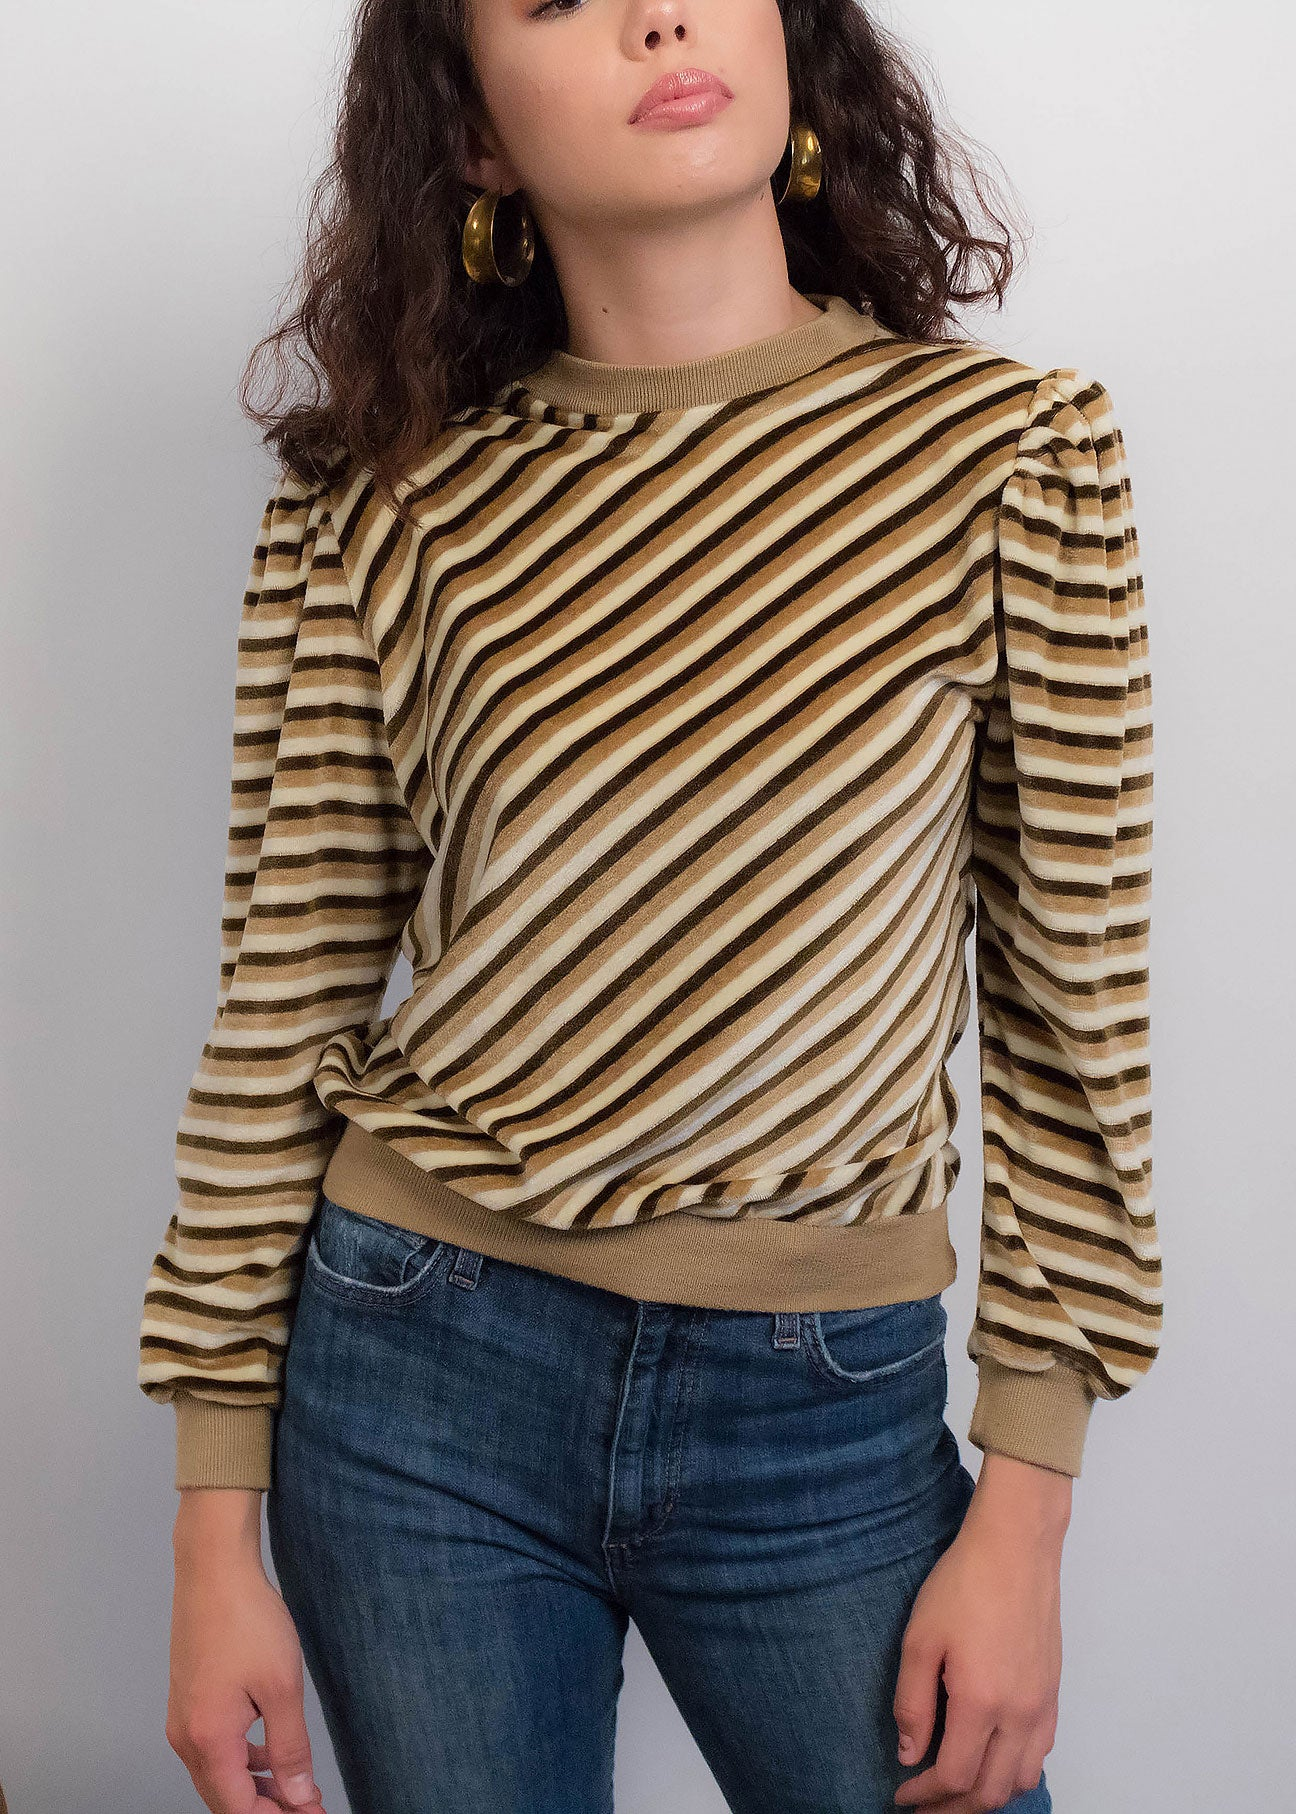 70s Velvet Chevron Top